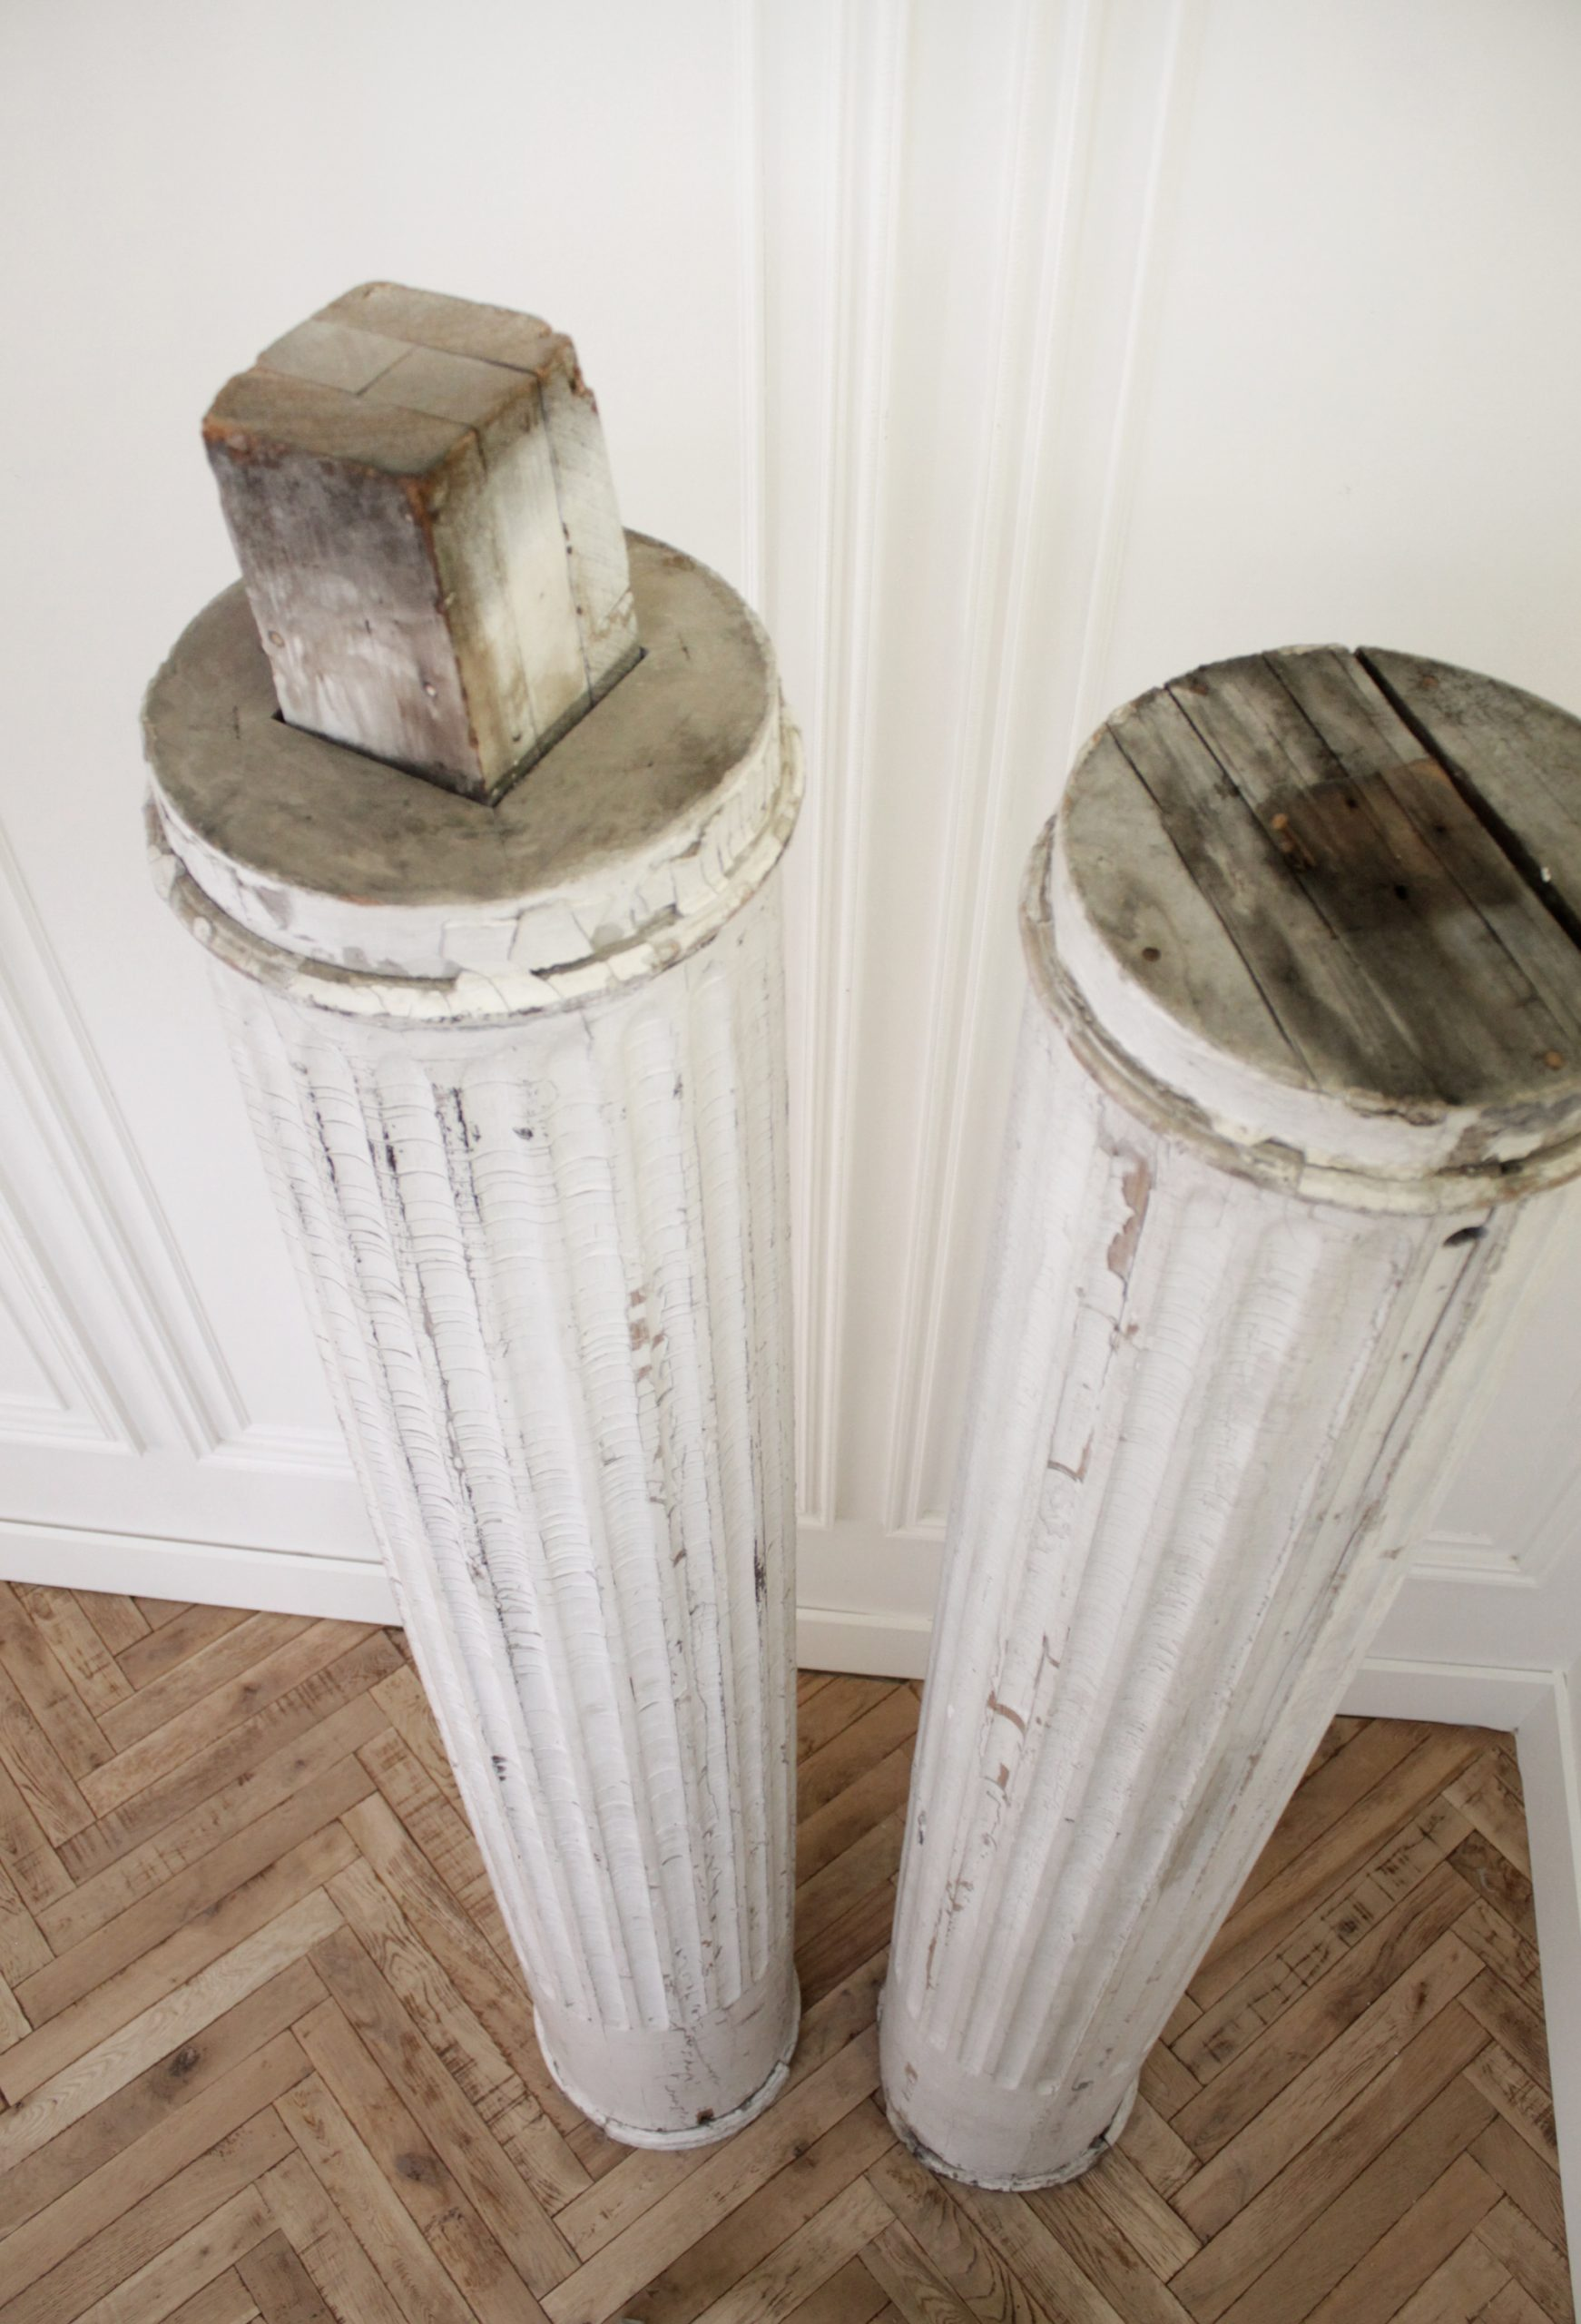 Pair of Antique Architectural Fluted Columns with White Paint